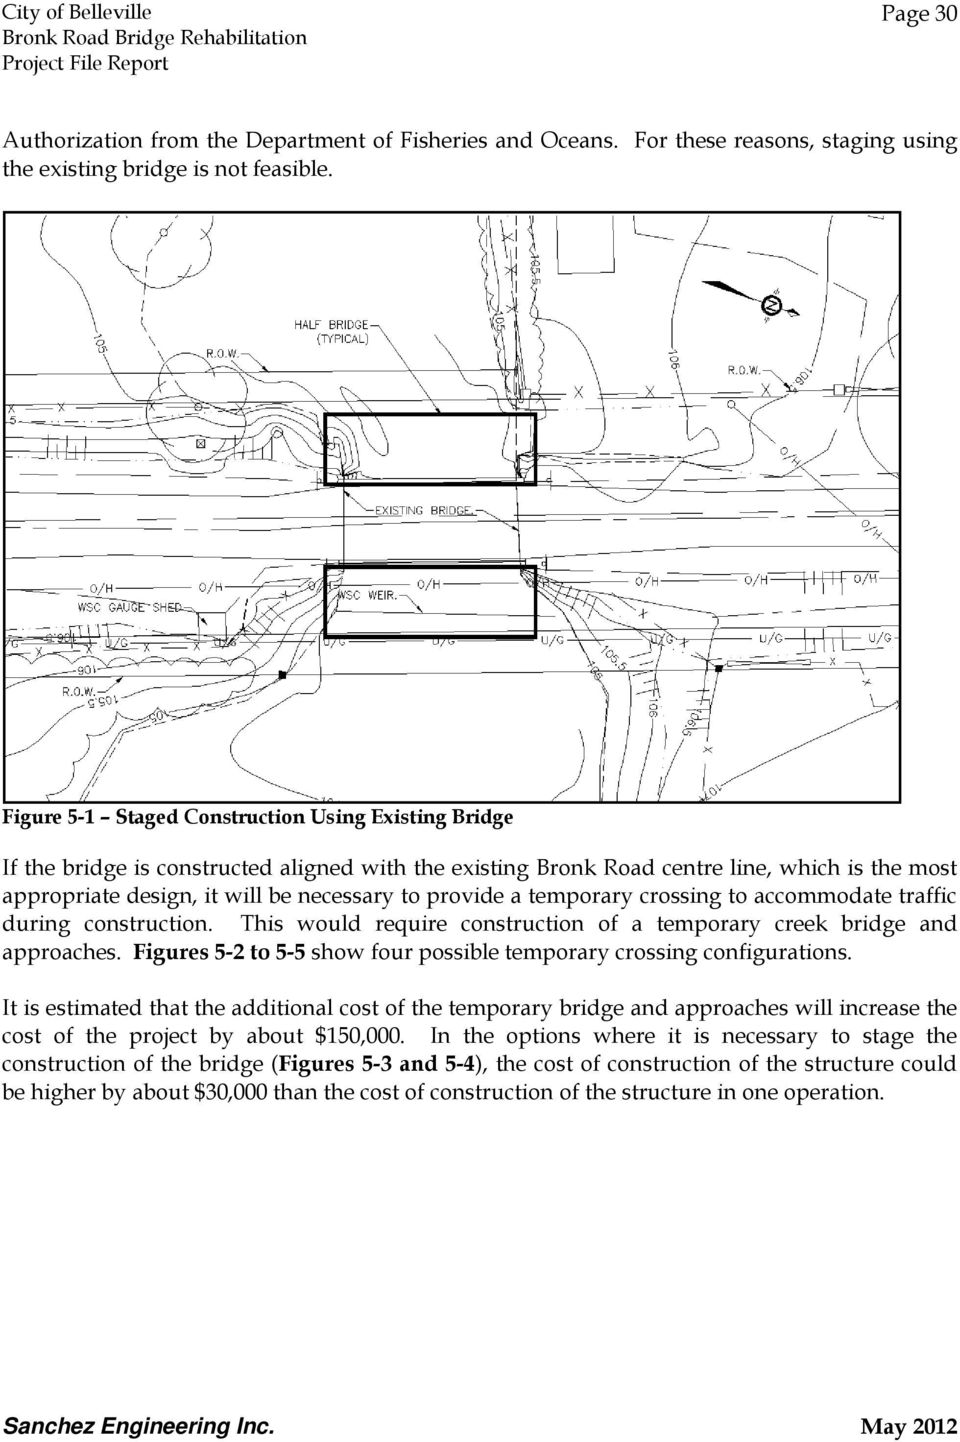 provide a temporary crossing to accommodate traffic during construction. This would require construction of a temporary creek bridge and approaches.